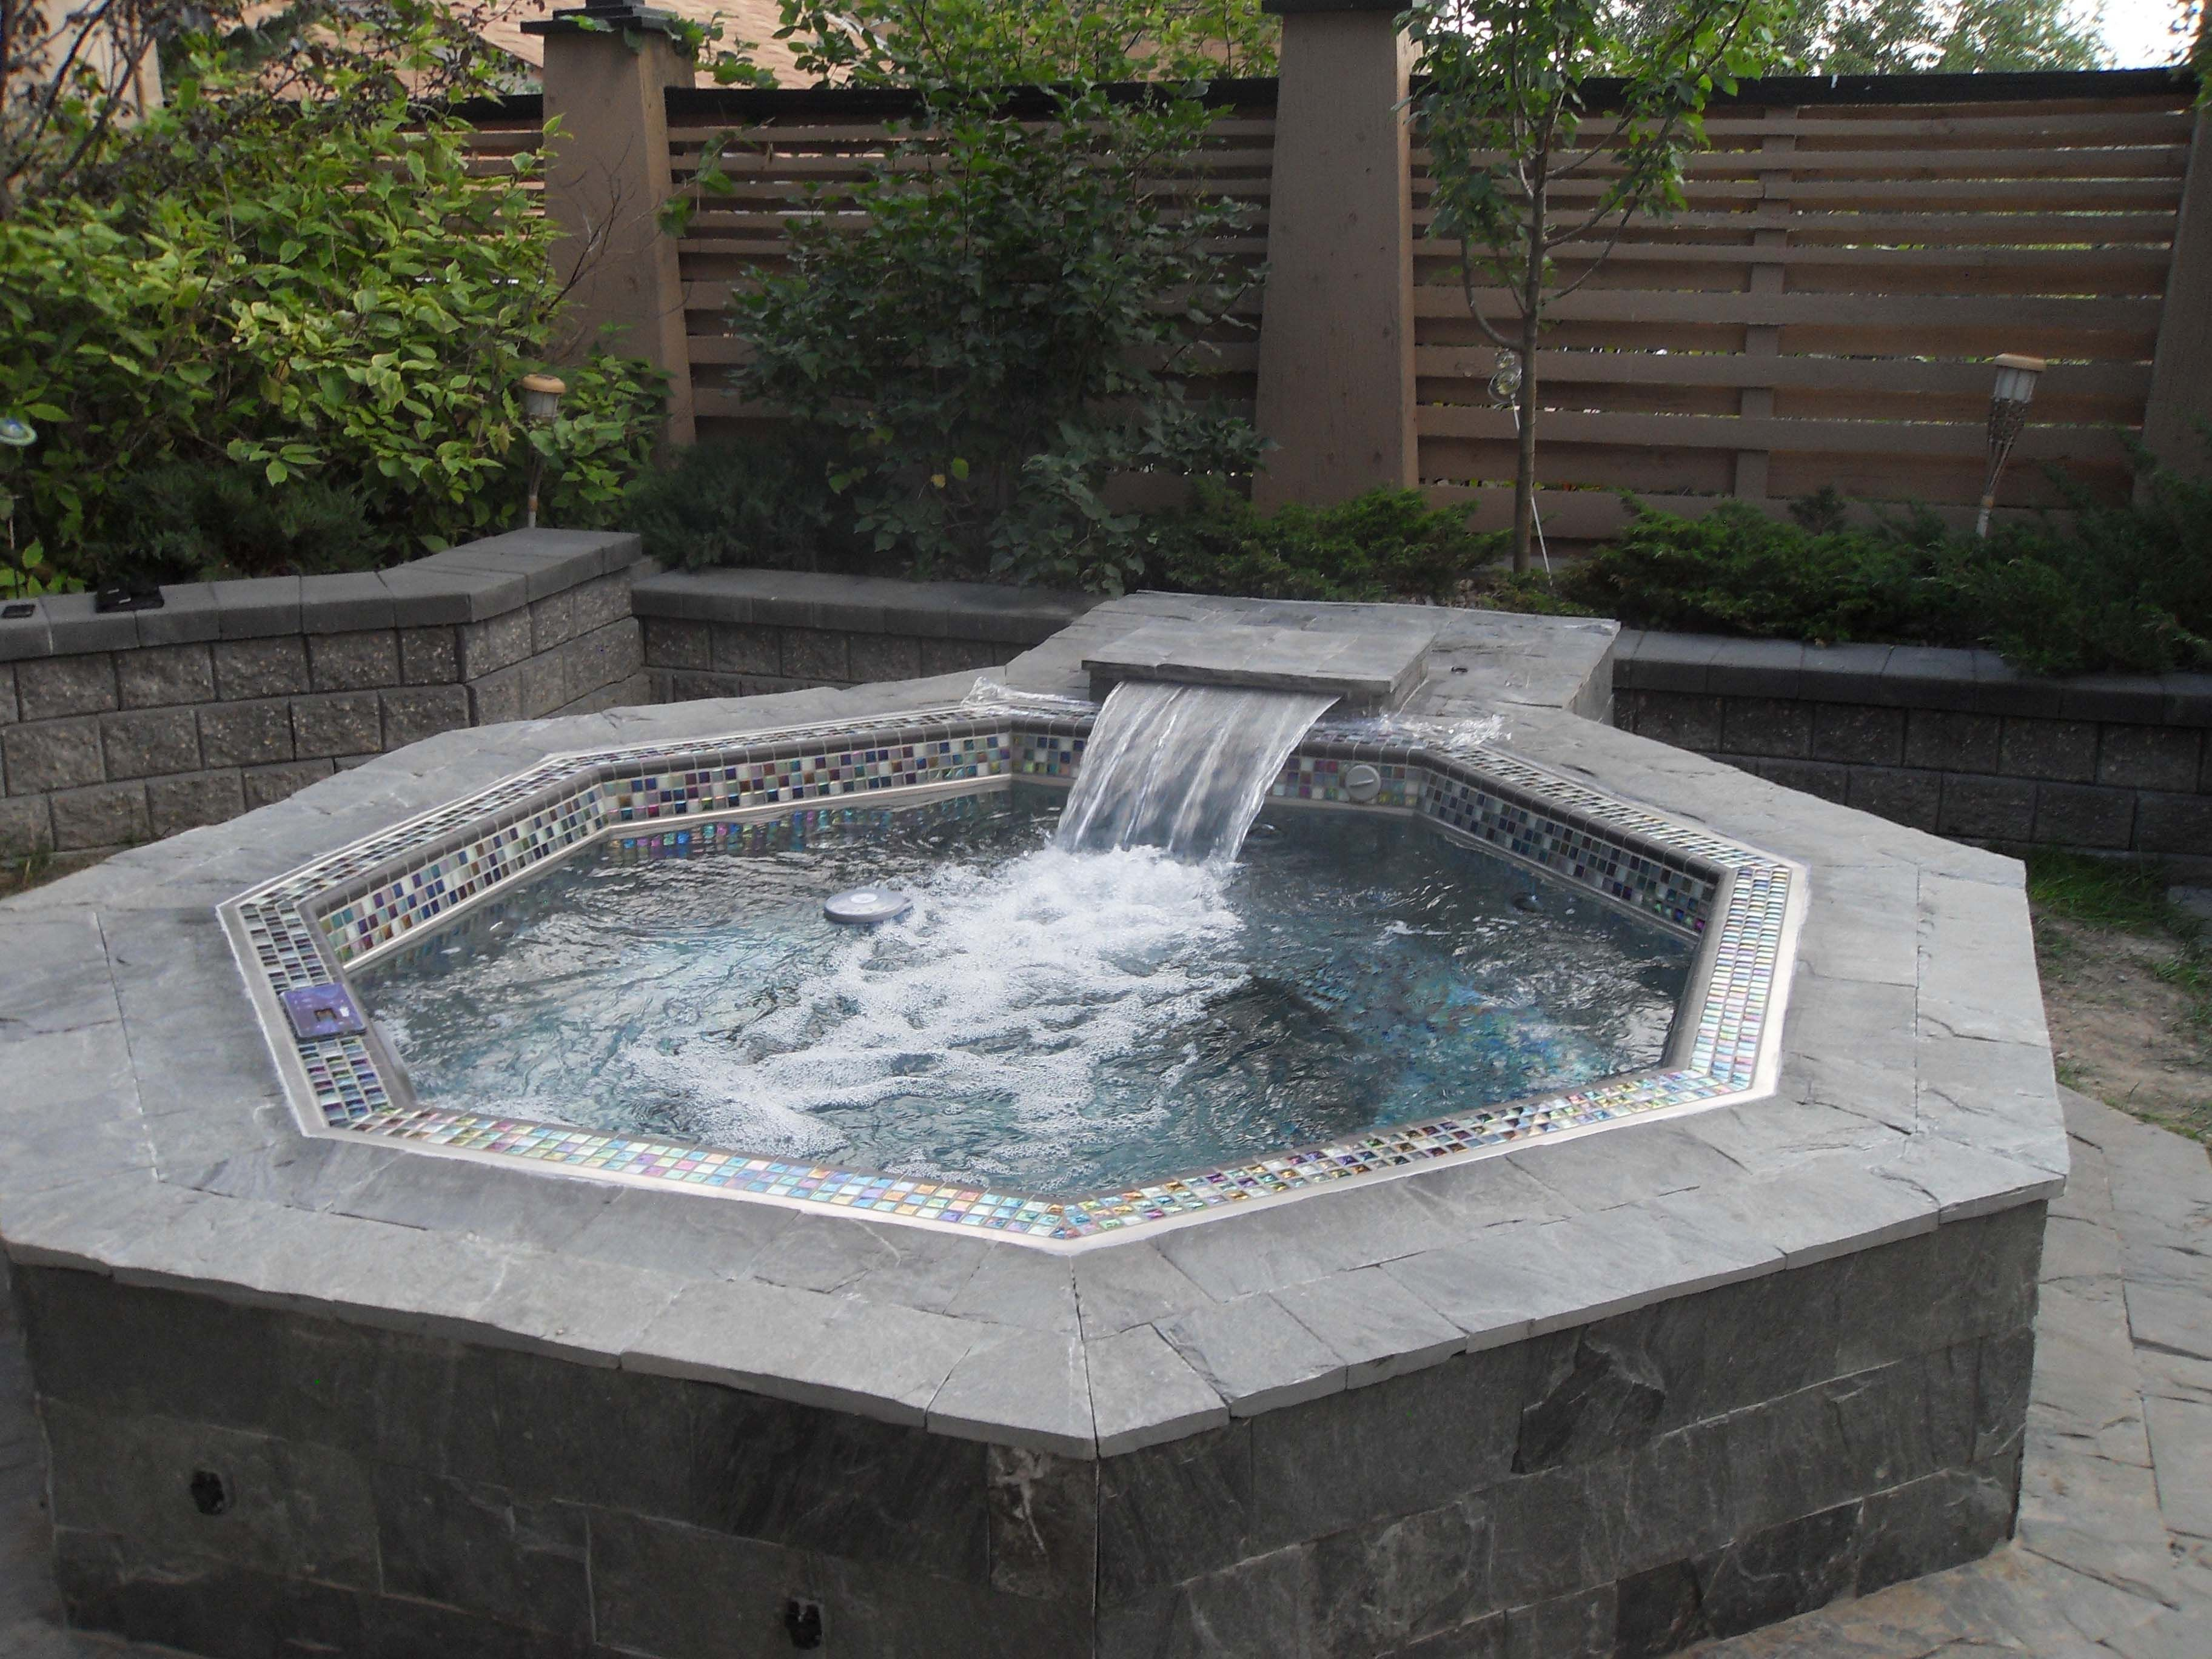 Image Result For Customize A Portable Hot Tub With Waterfall